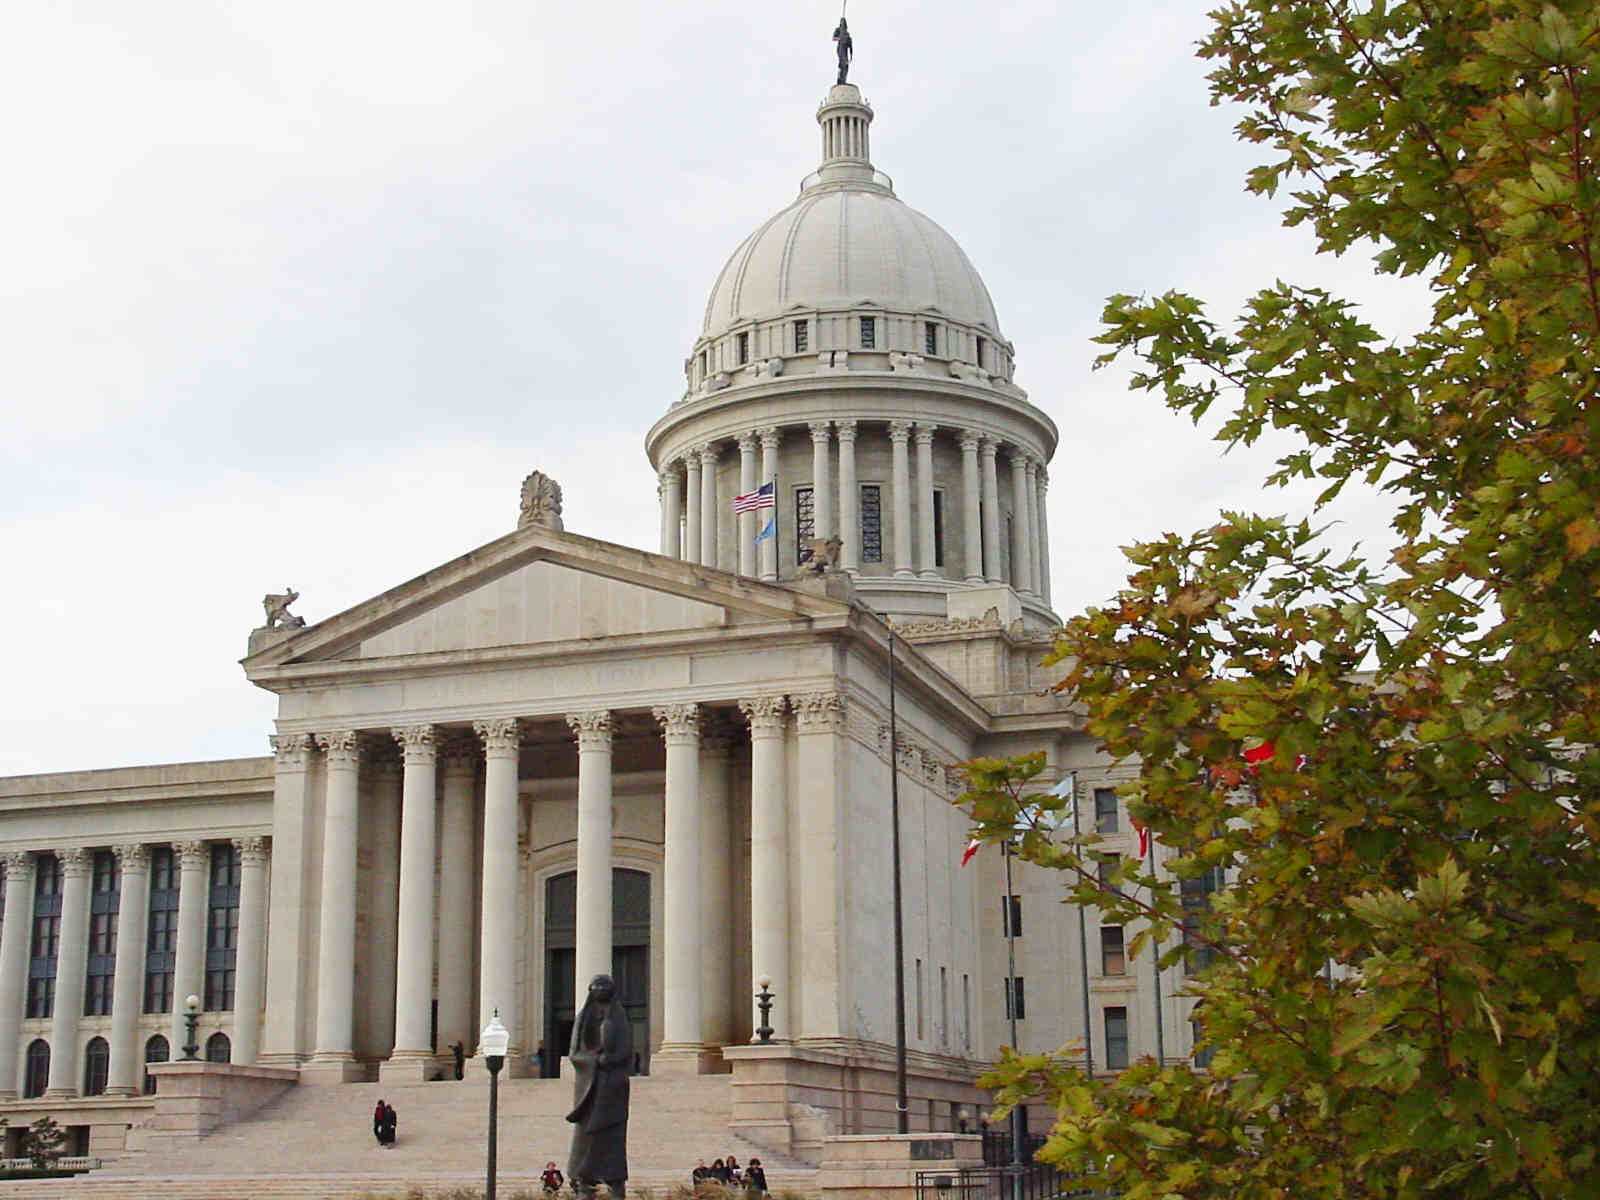 Equal Justice Demands passage of the Abolition of Abortion in Oklahoma Act